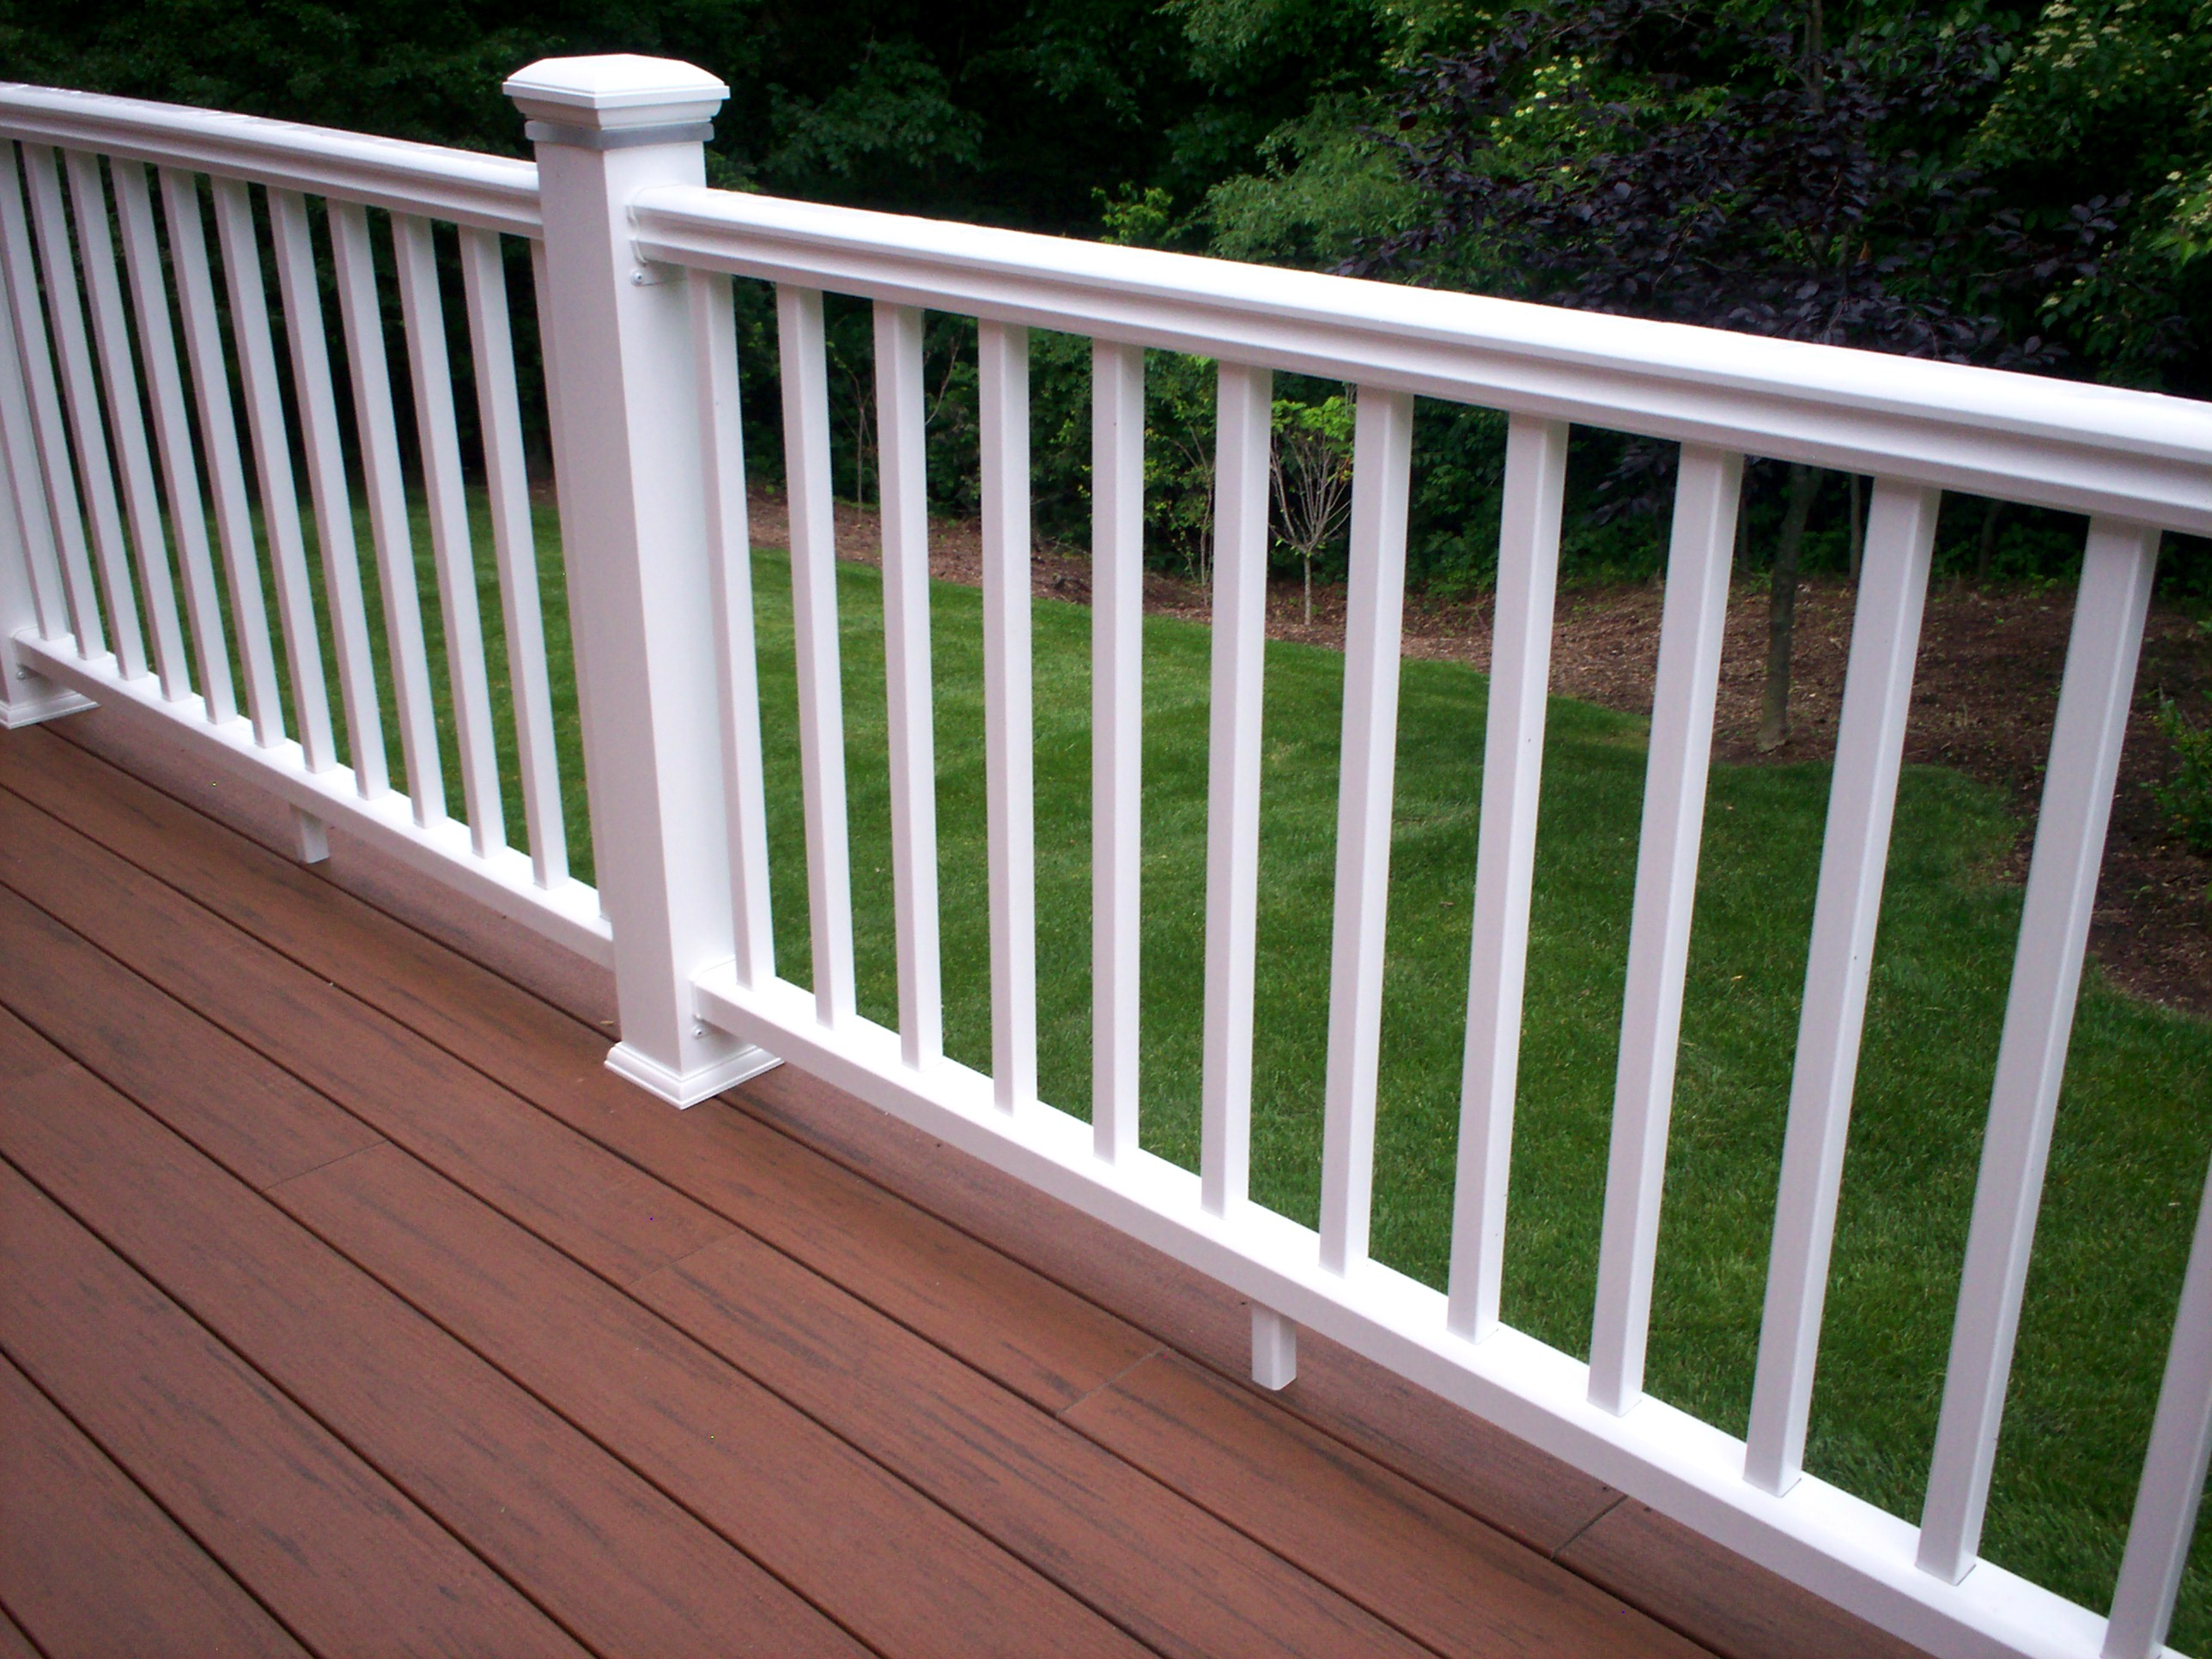 Timber tech terrain with white radiance rail railings